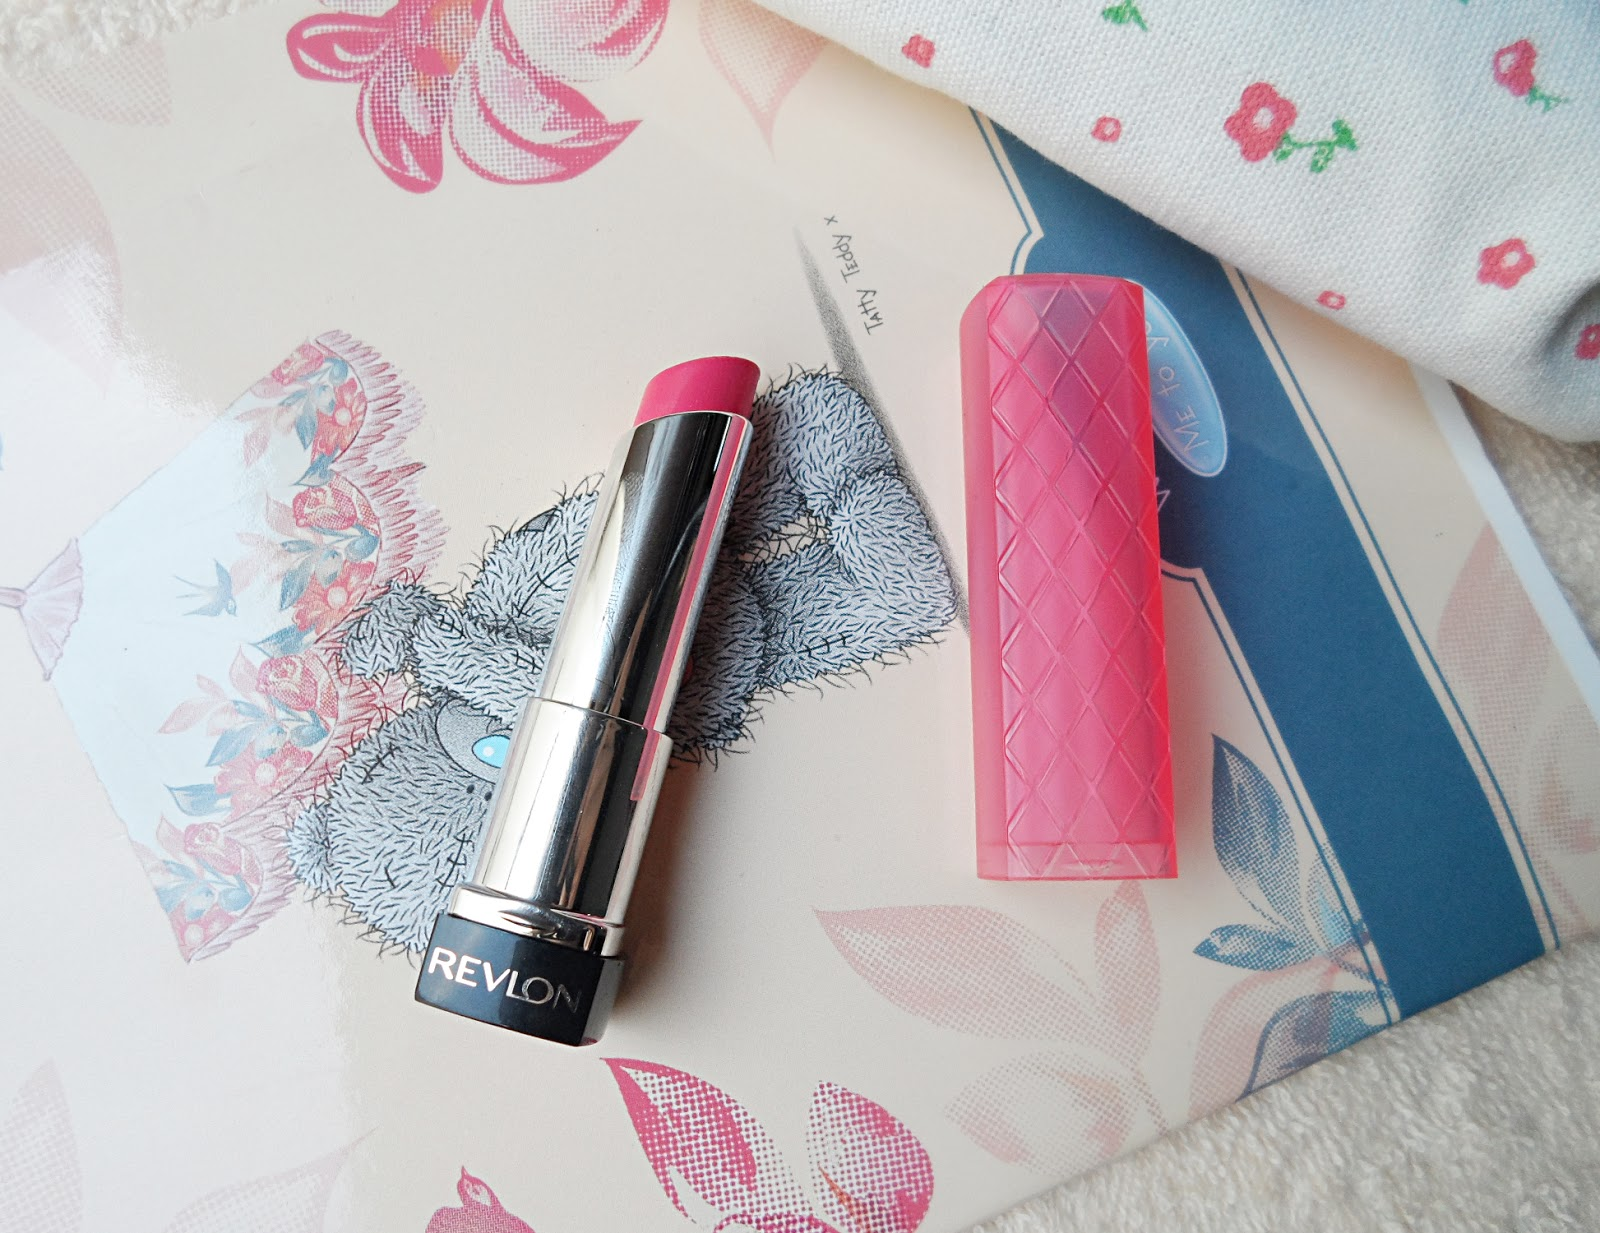 revlon cosmetics review pink lipstick swatches